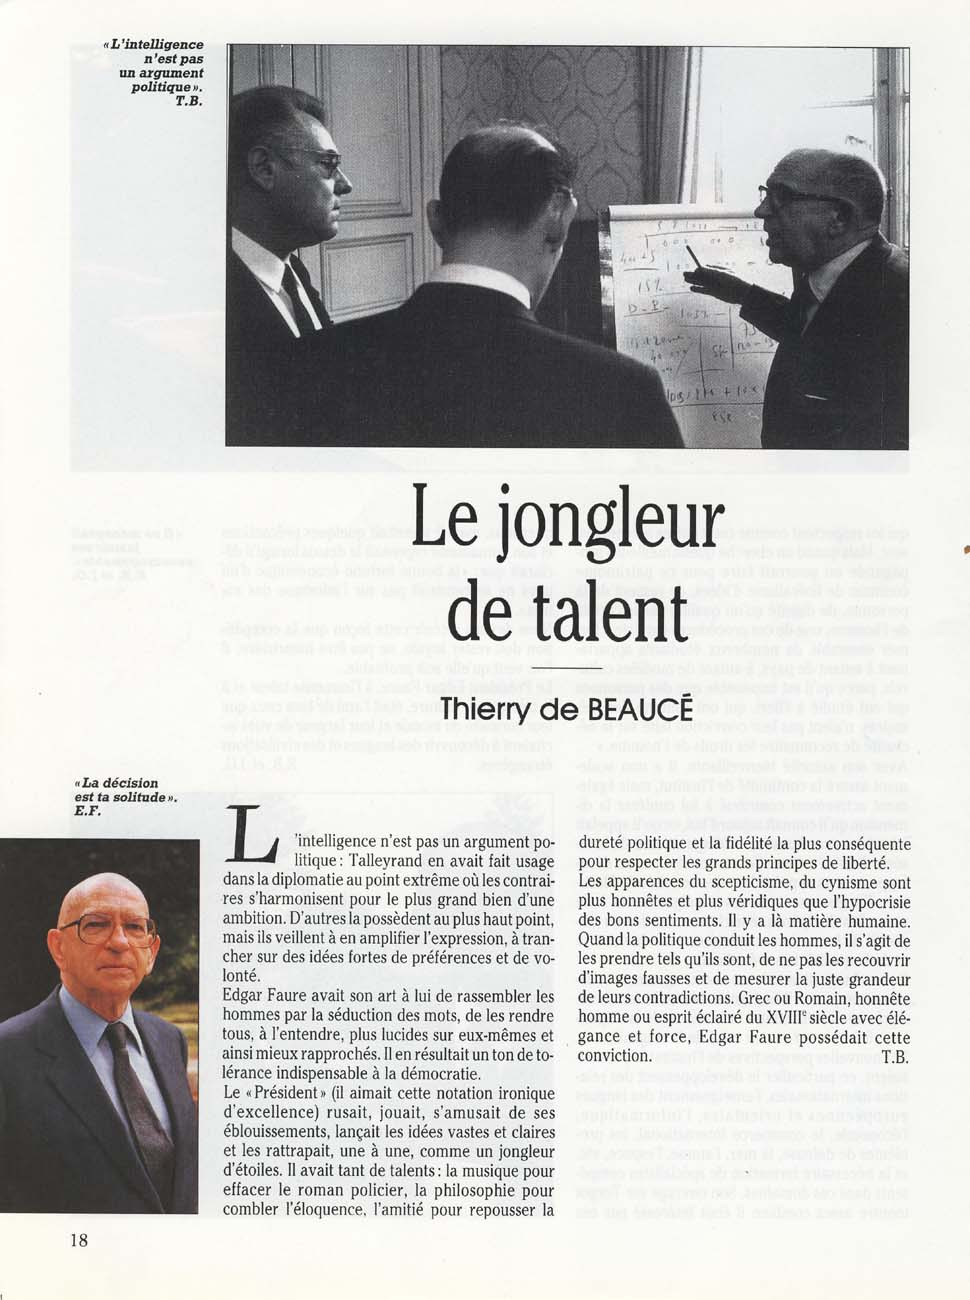 Le jongleur de talent (Thierry de Beaucé)